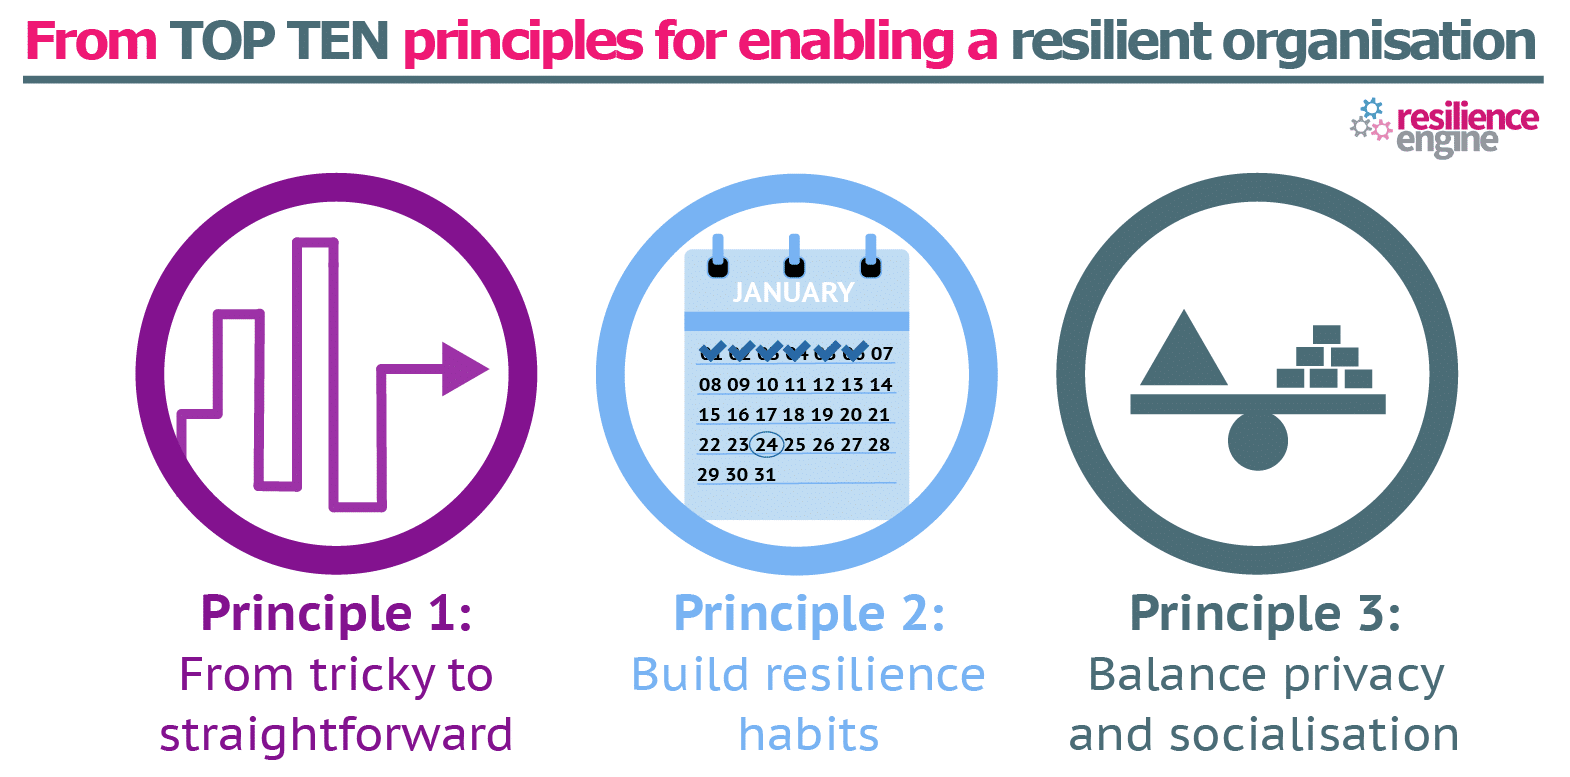 Resilience Engine, top ten principles, resilient organisation, build resilience habits, good habits, being resilient